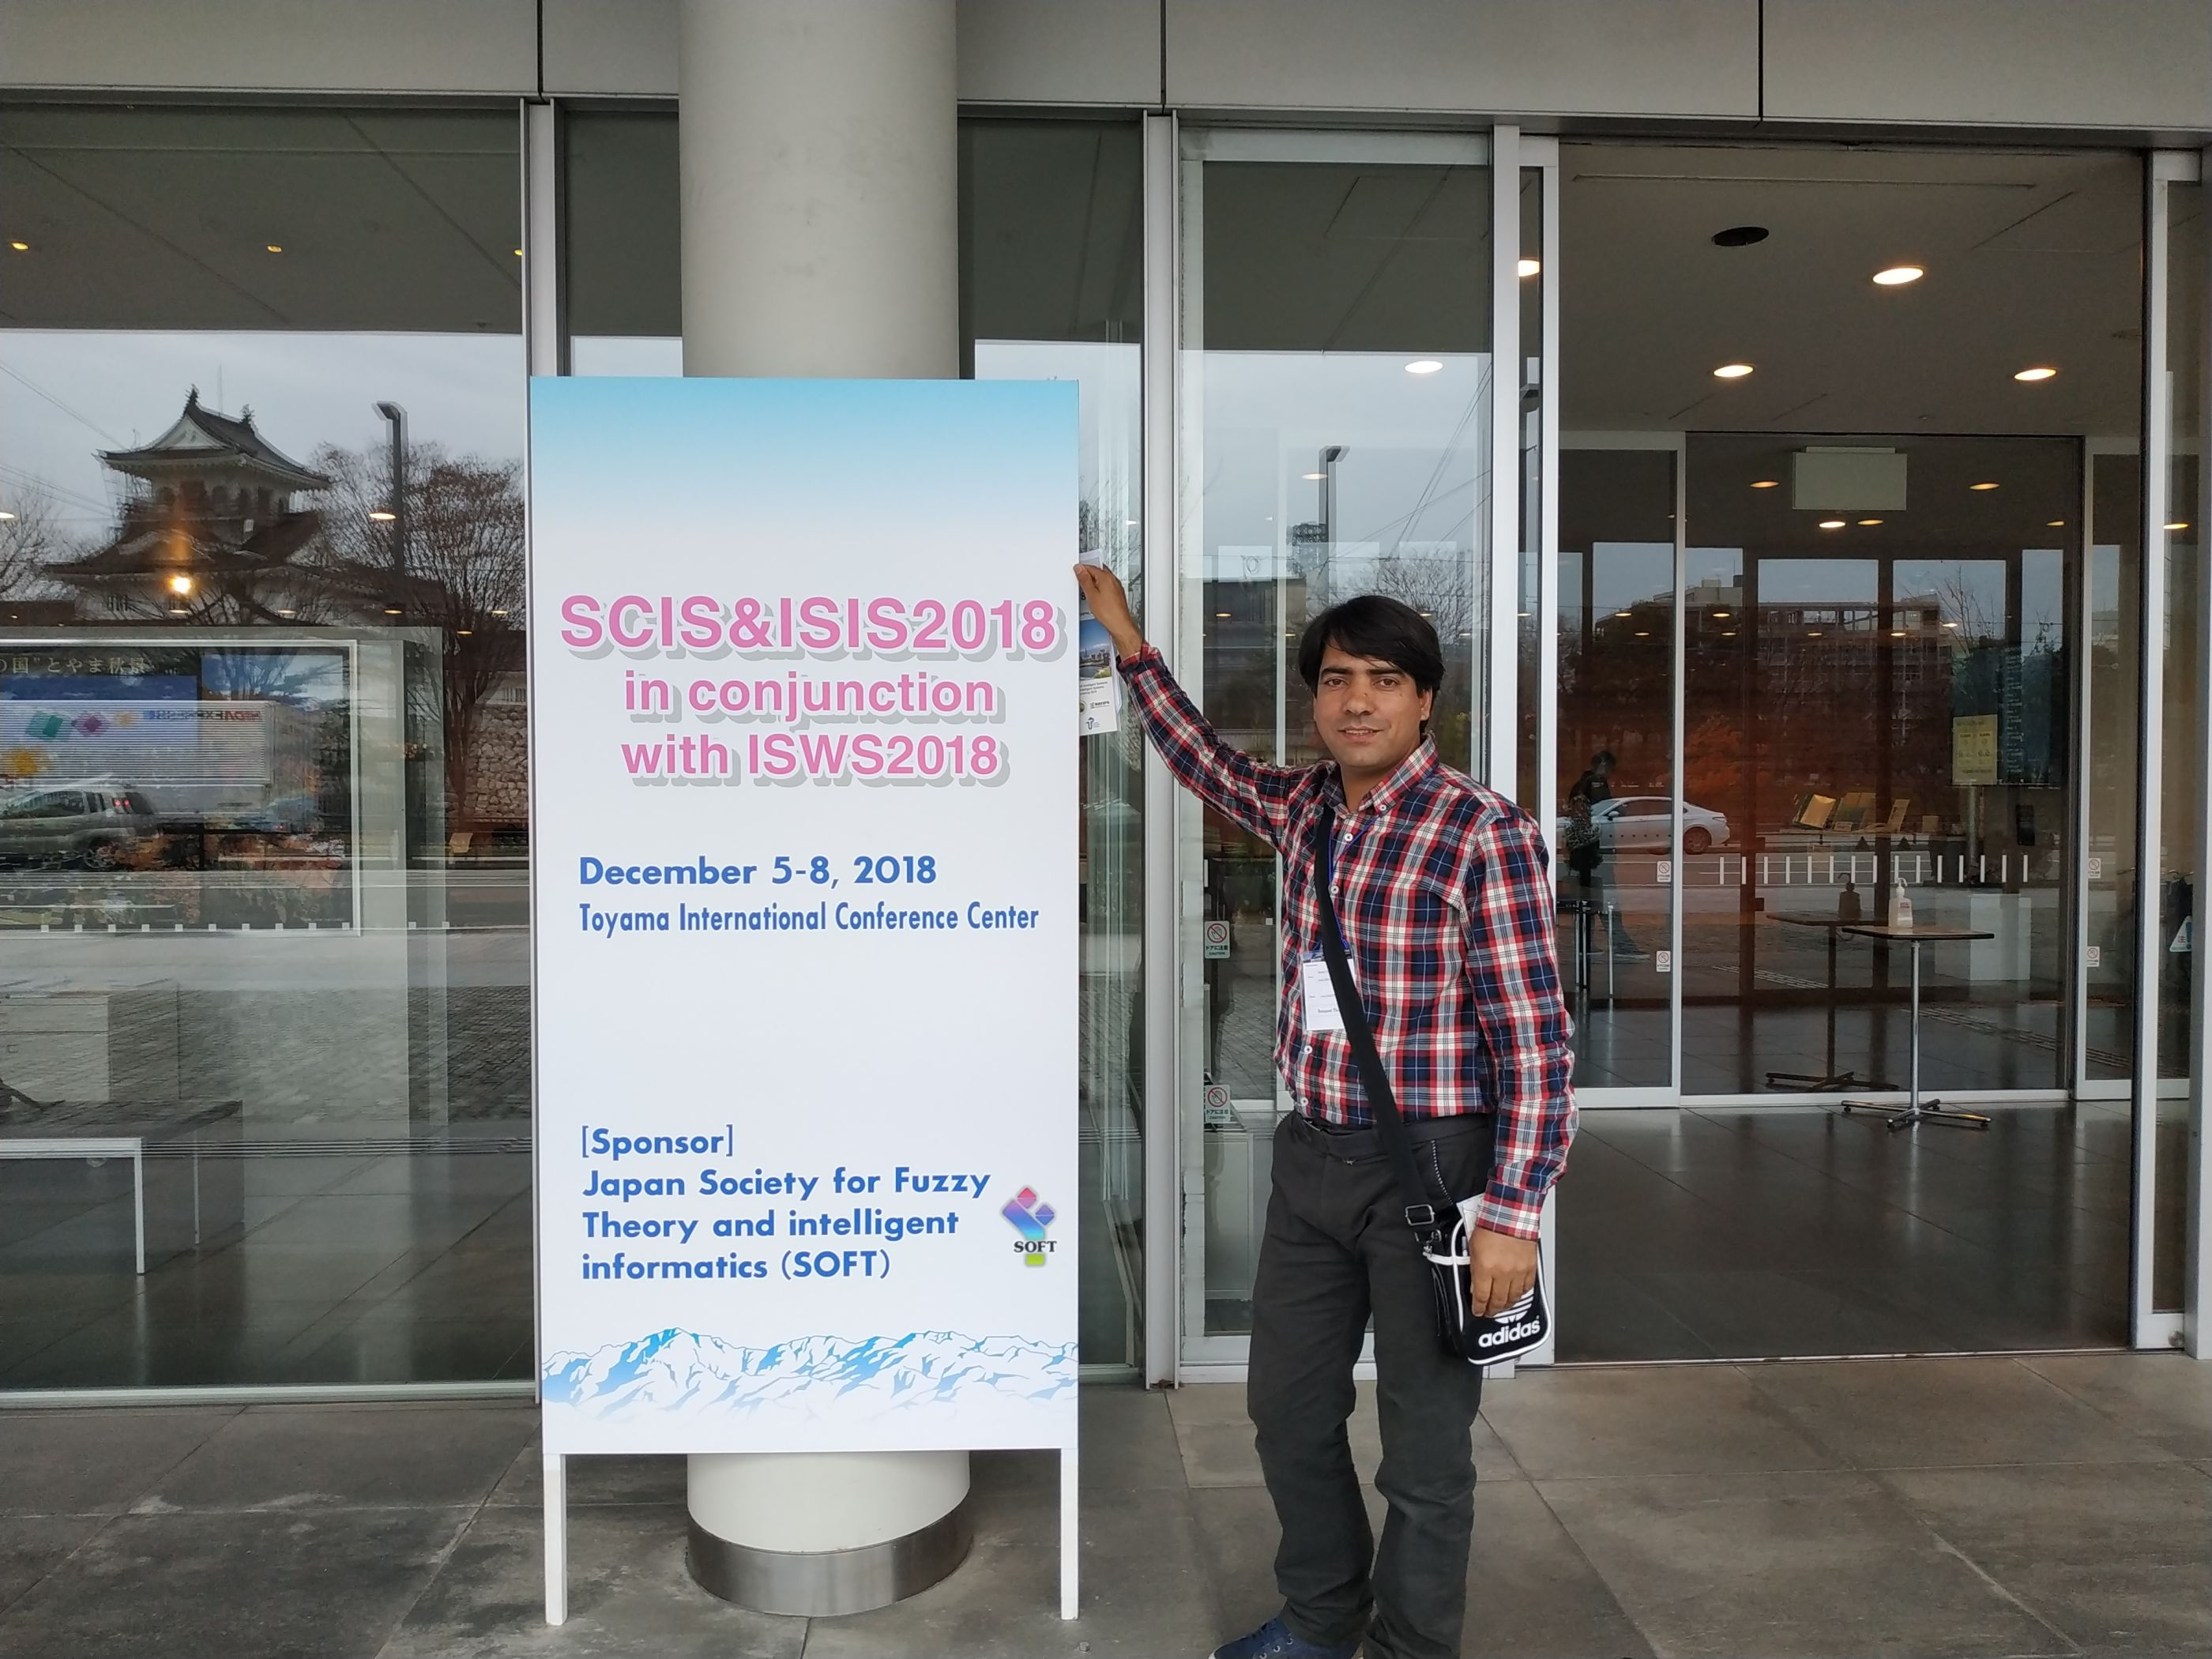 Dr. Rehman Ali posing for a  photo prior to start of joint 10th International Conference on SCIS & ISIS 2018 in Toyama, Japan